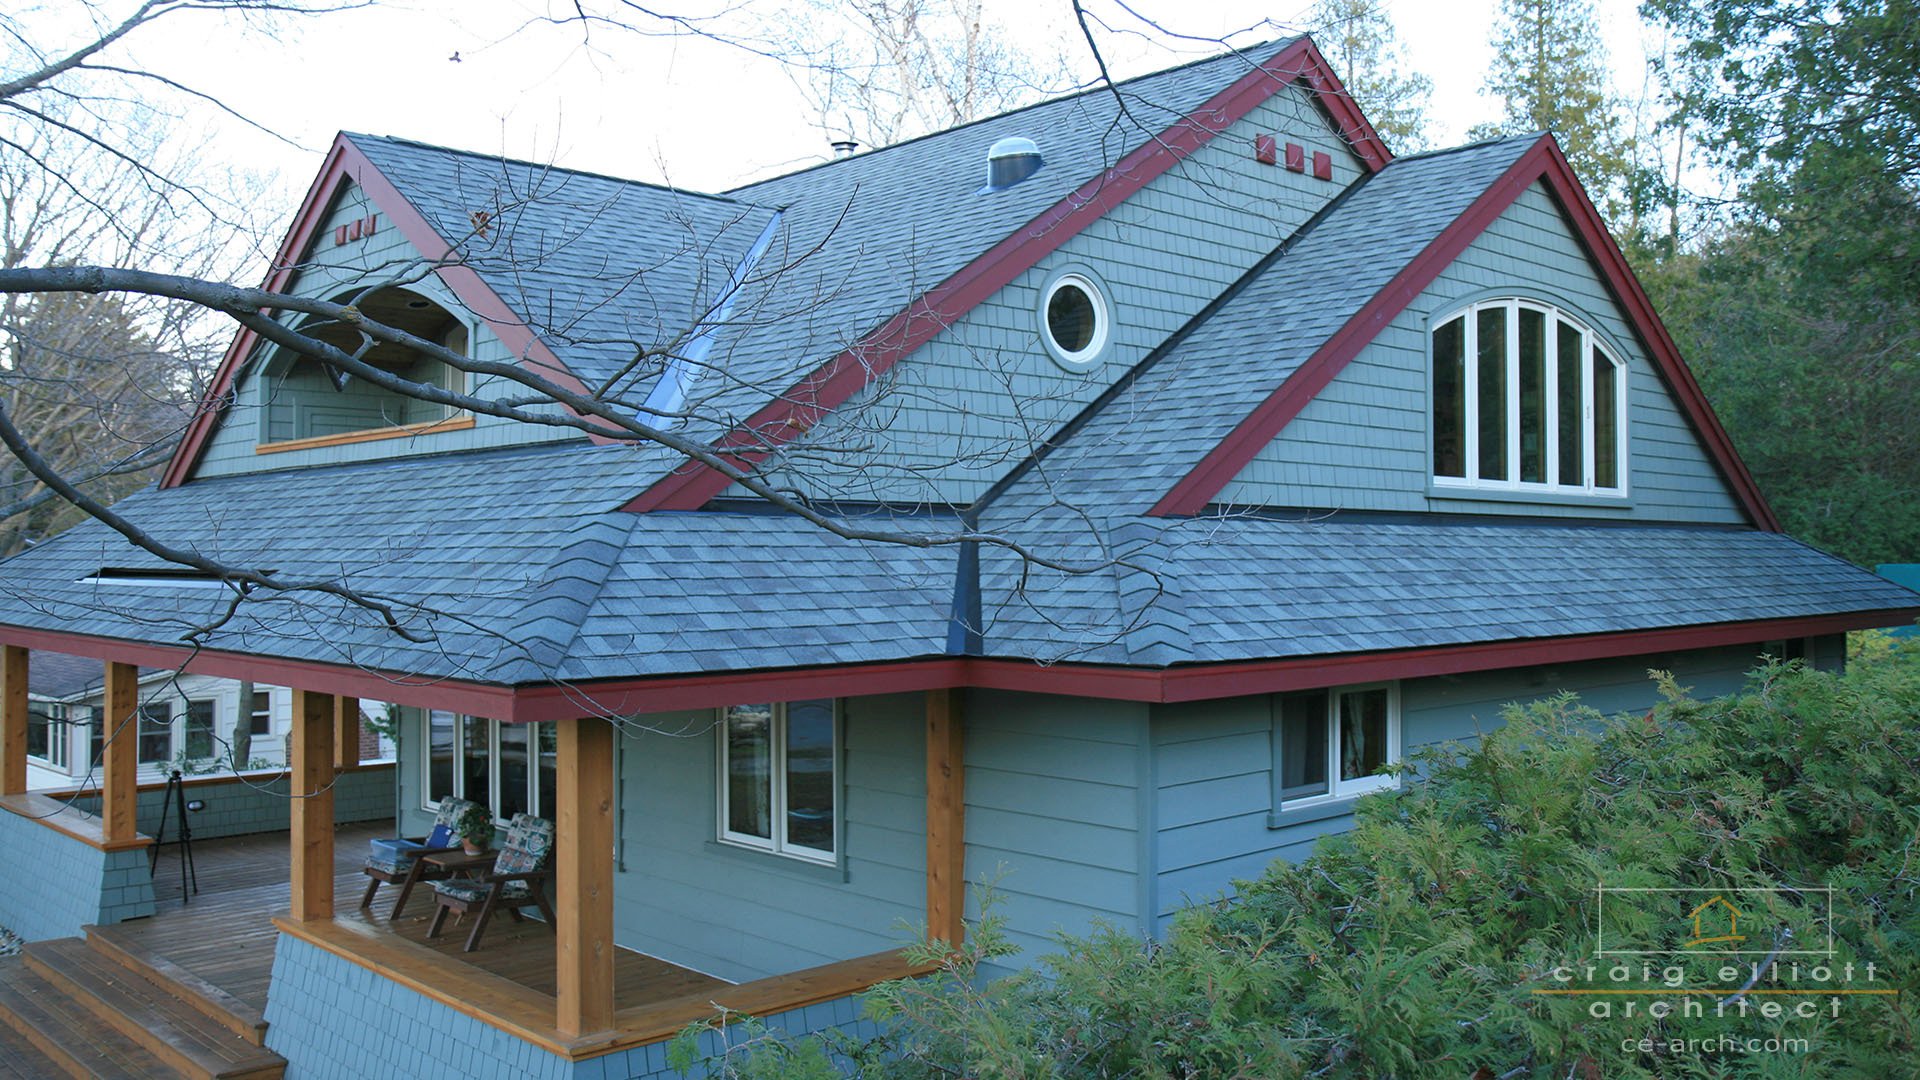 exterior photos - rooflines